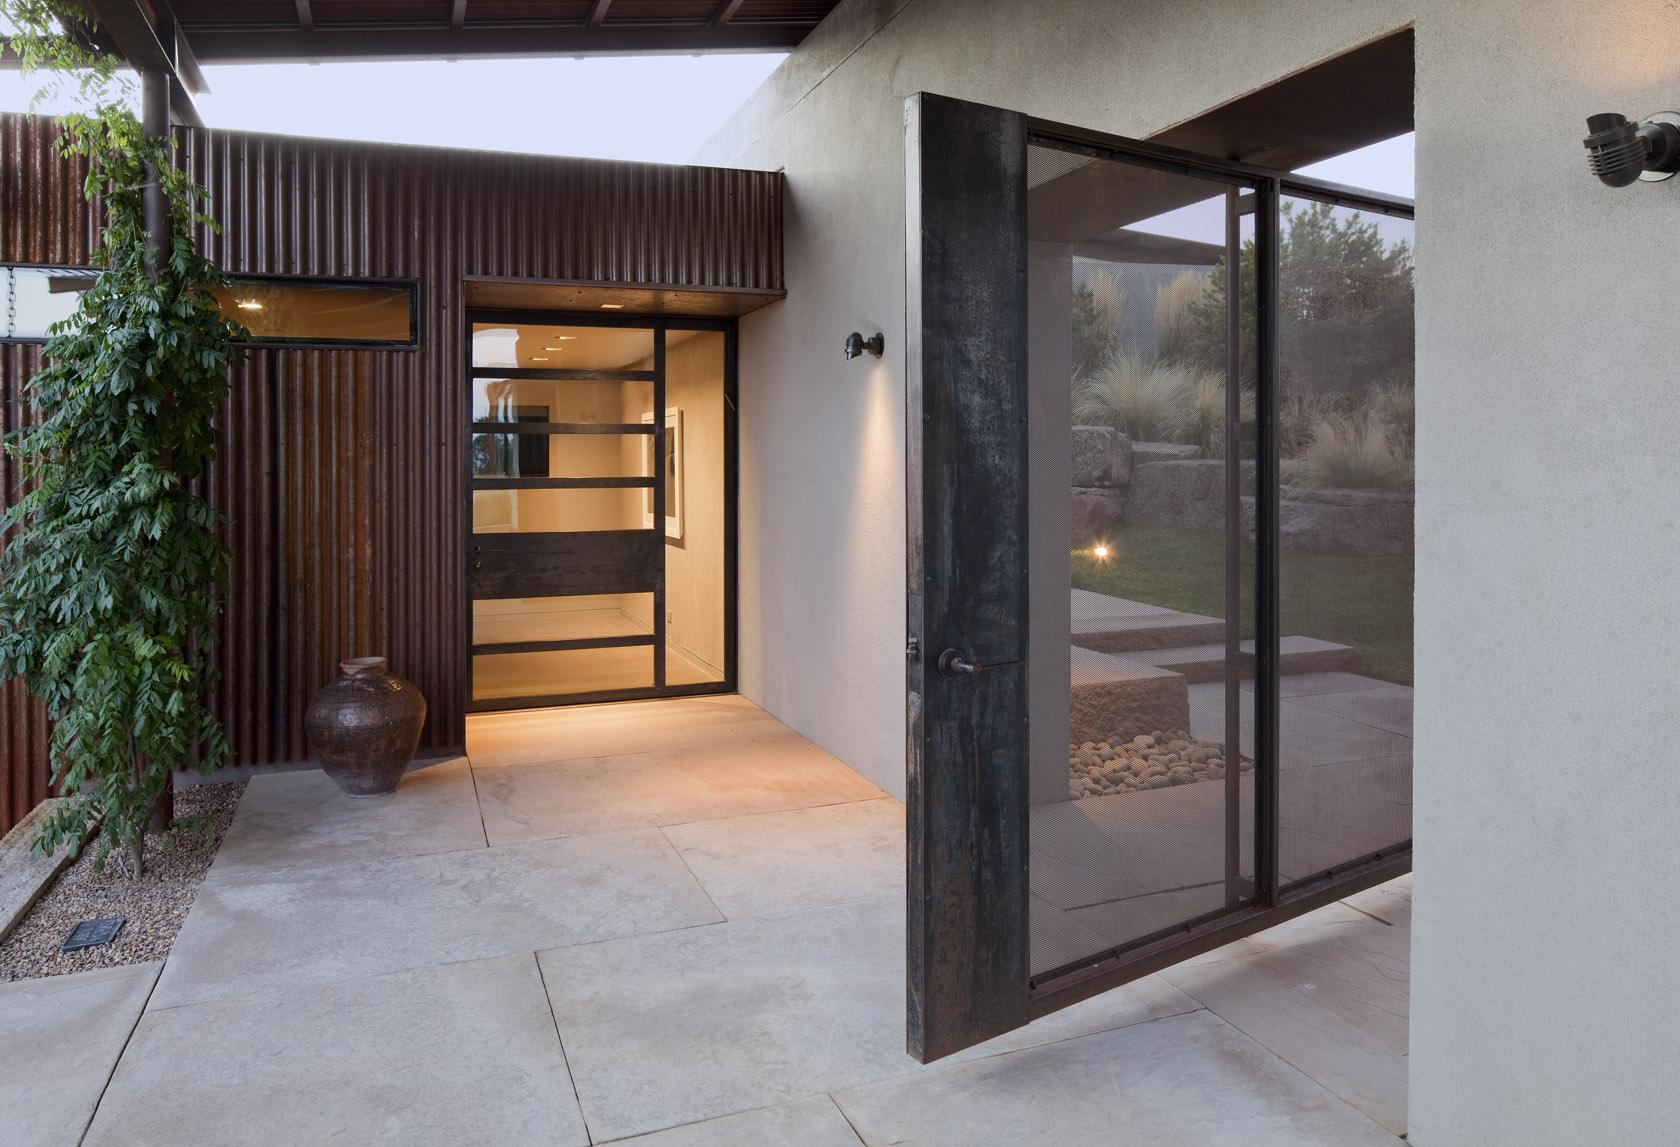 Entrance, Desert House in Santa Fe, New Mexico